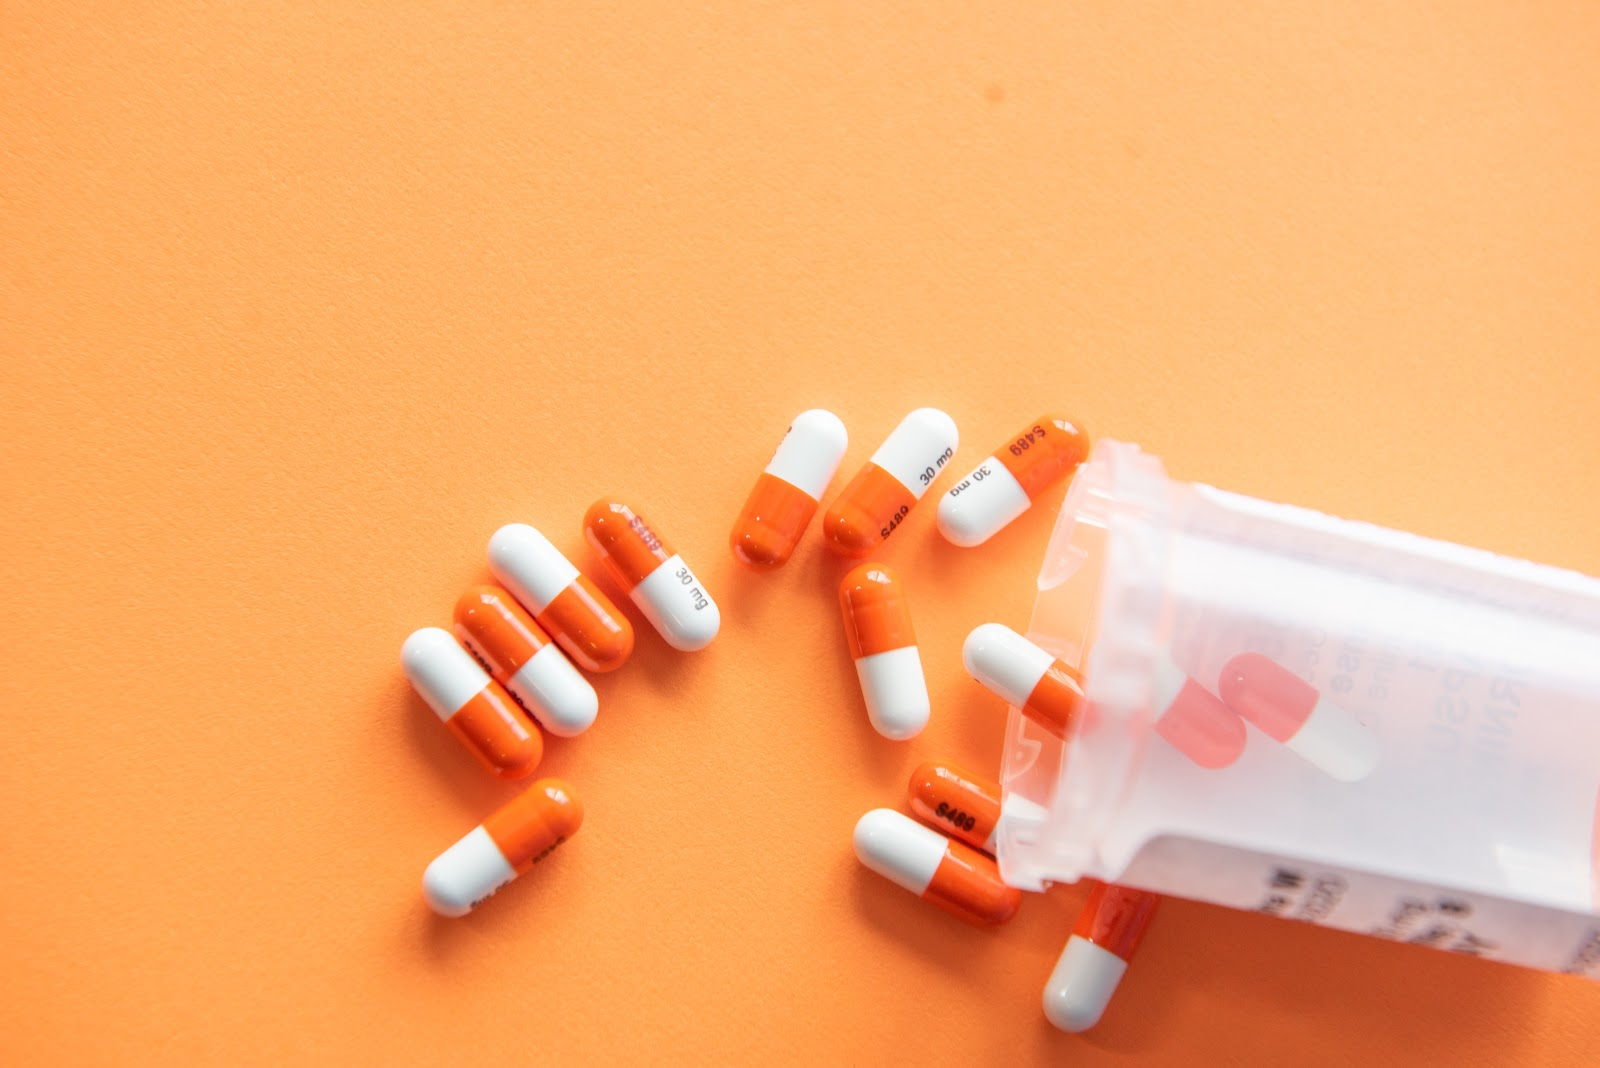 How long does Valium last in your system?